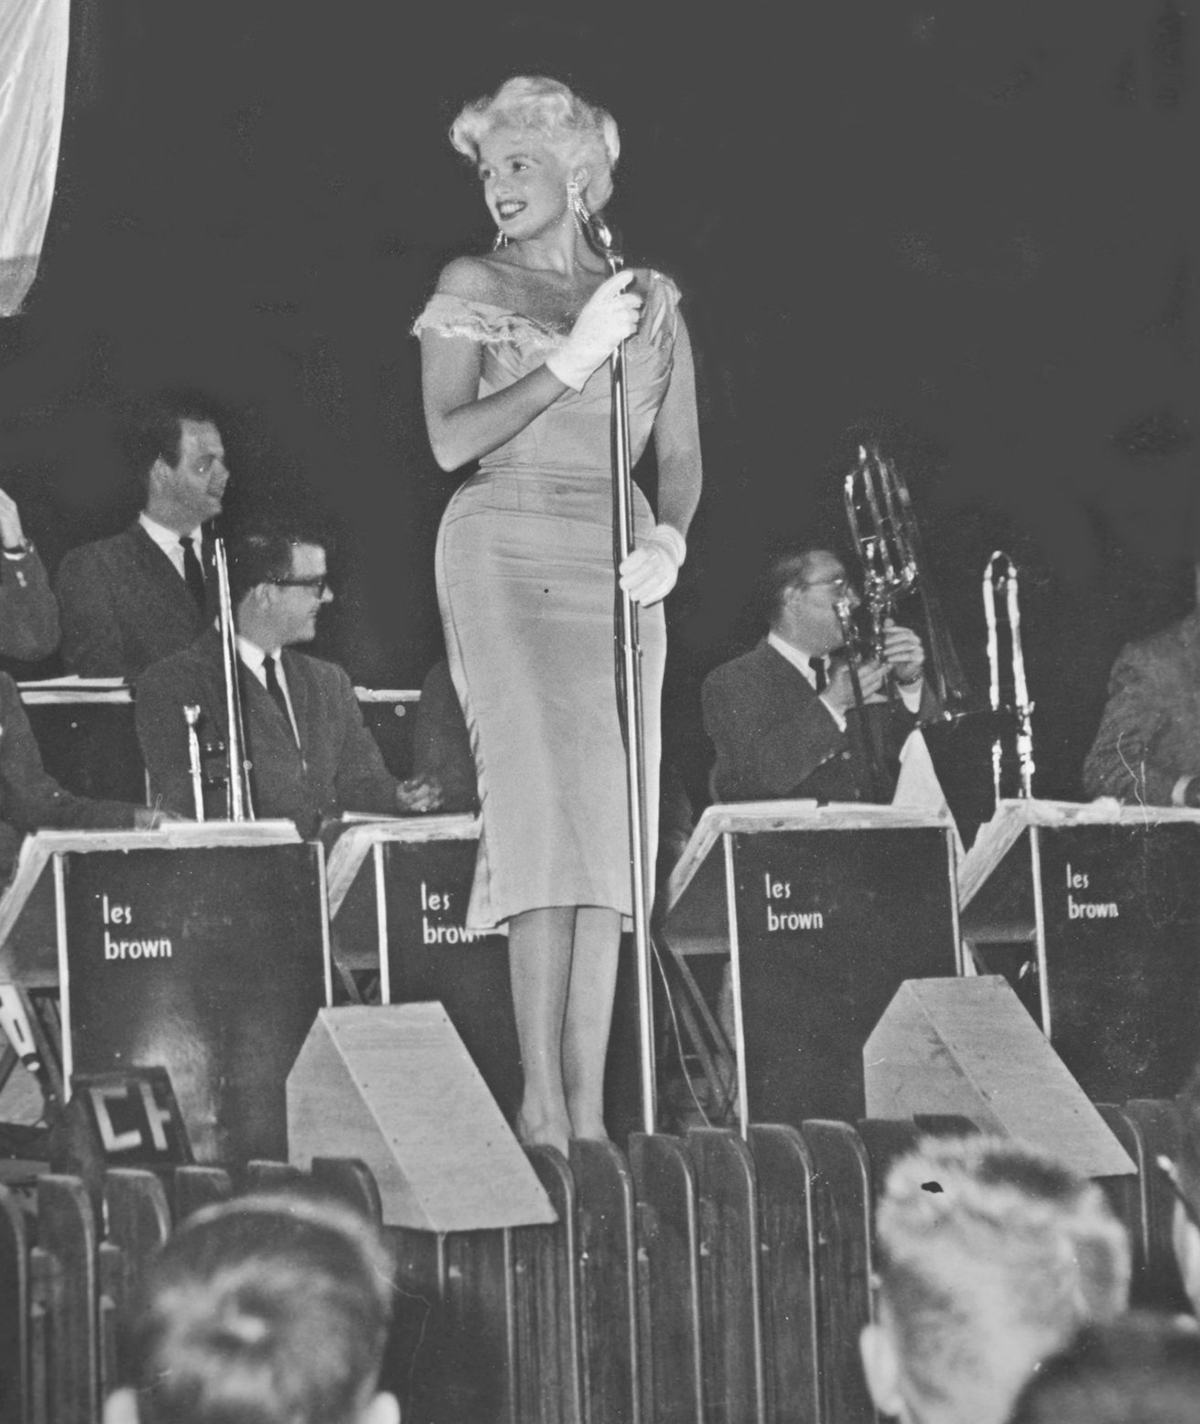 Jayne Mansfield performs at USO Show, 1957. Photo courtesy of Robert S. Sweeny and Wikipedia Commons